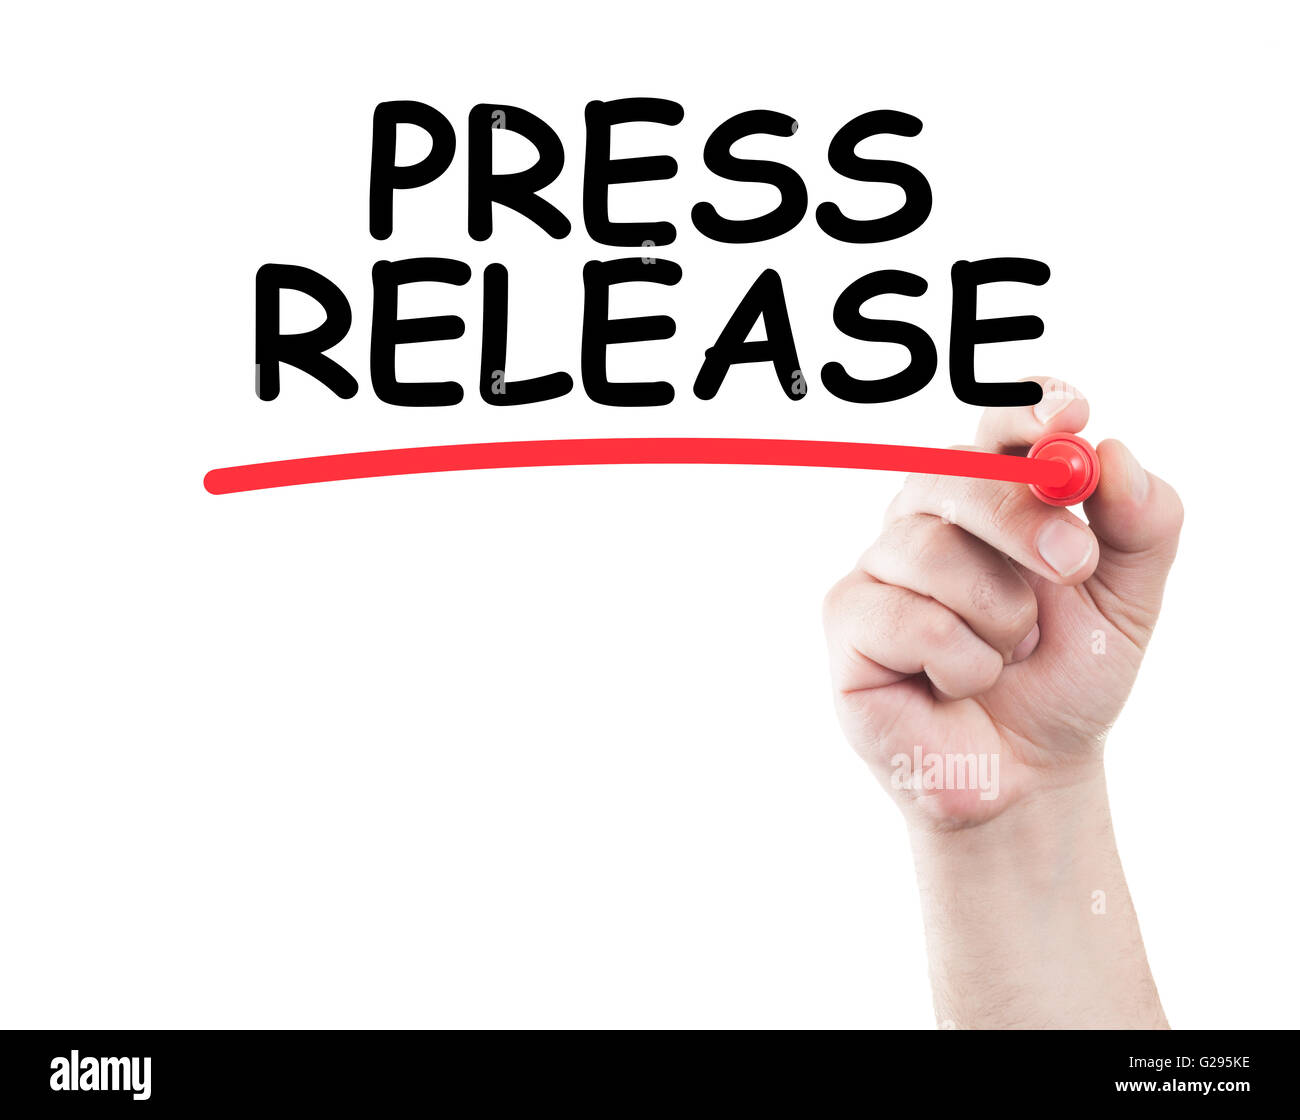 Press release concept made by a human hand holding a marker on transparent wipe board Stock Photo